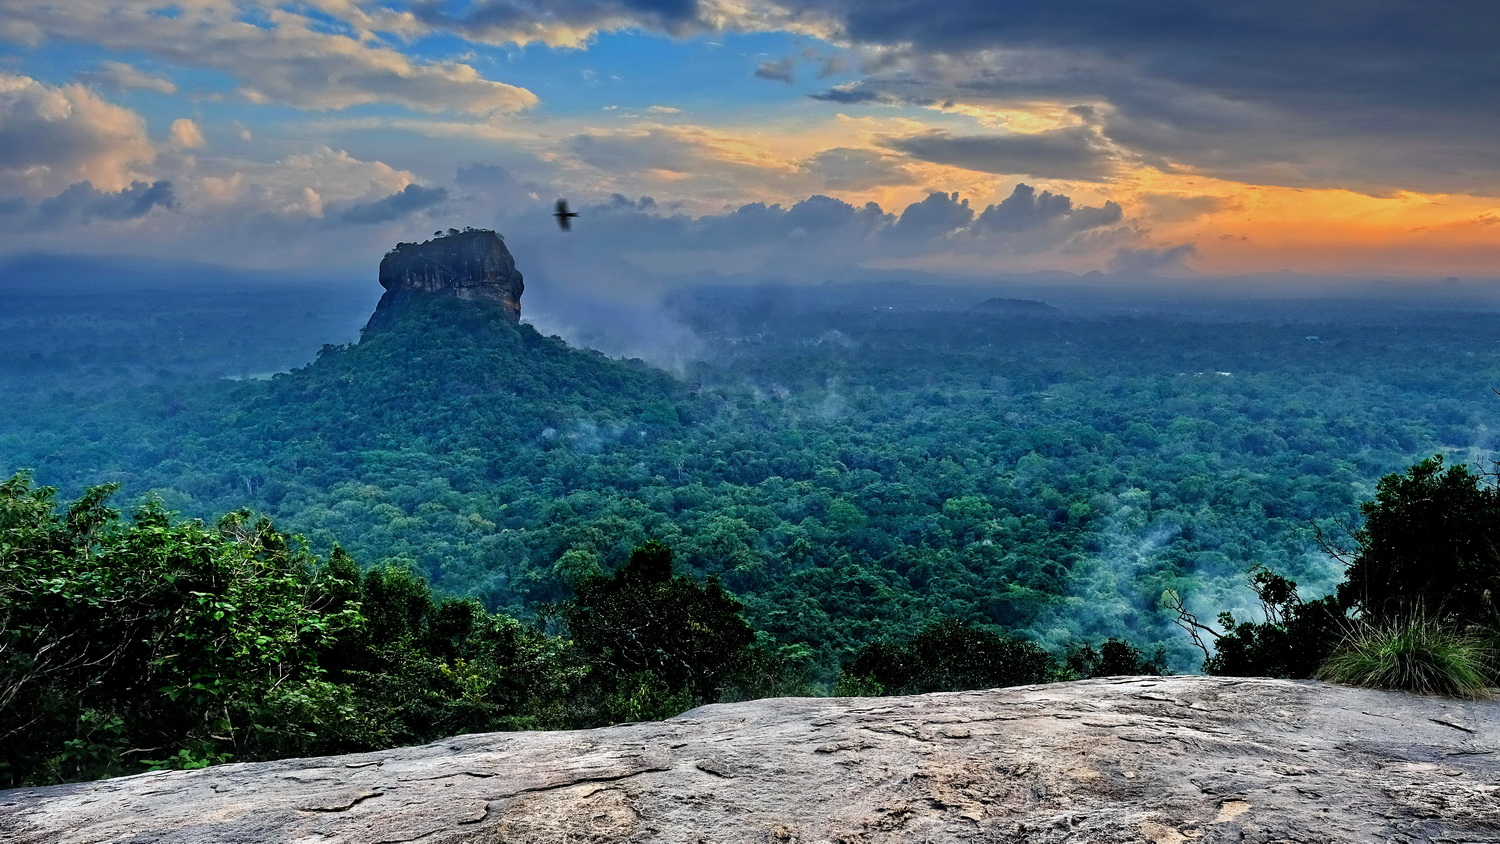 Ancient Rock Fortress above steamy jungle by Martin Lamprecht